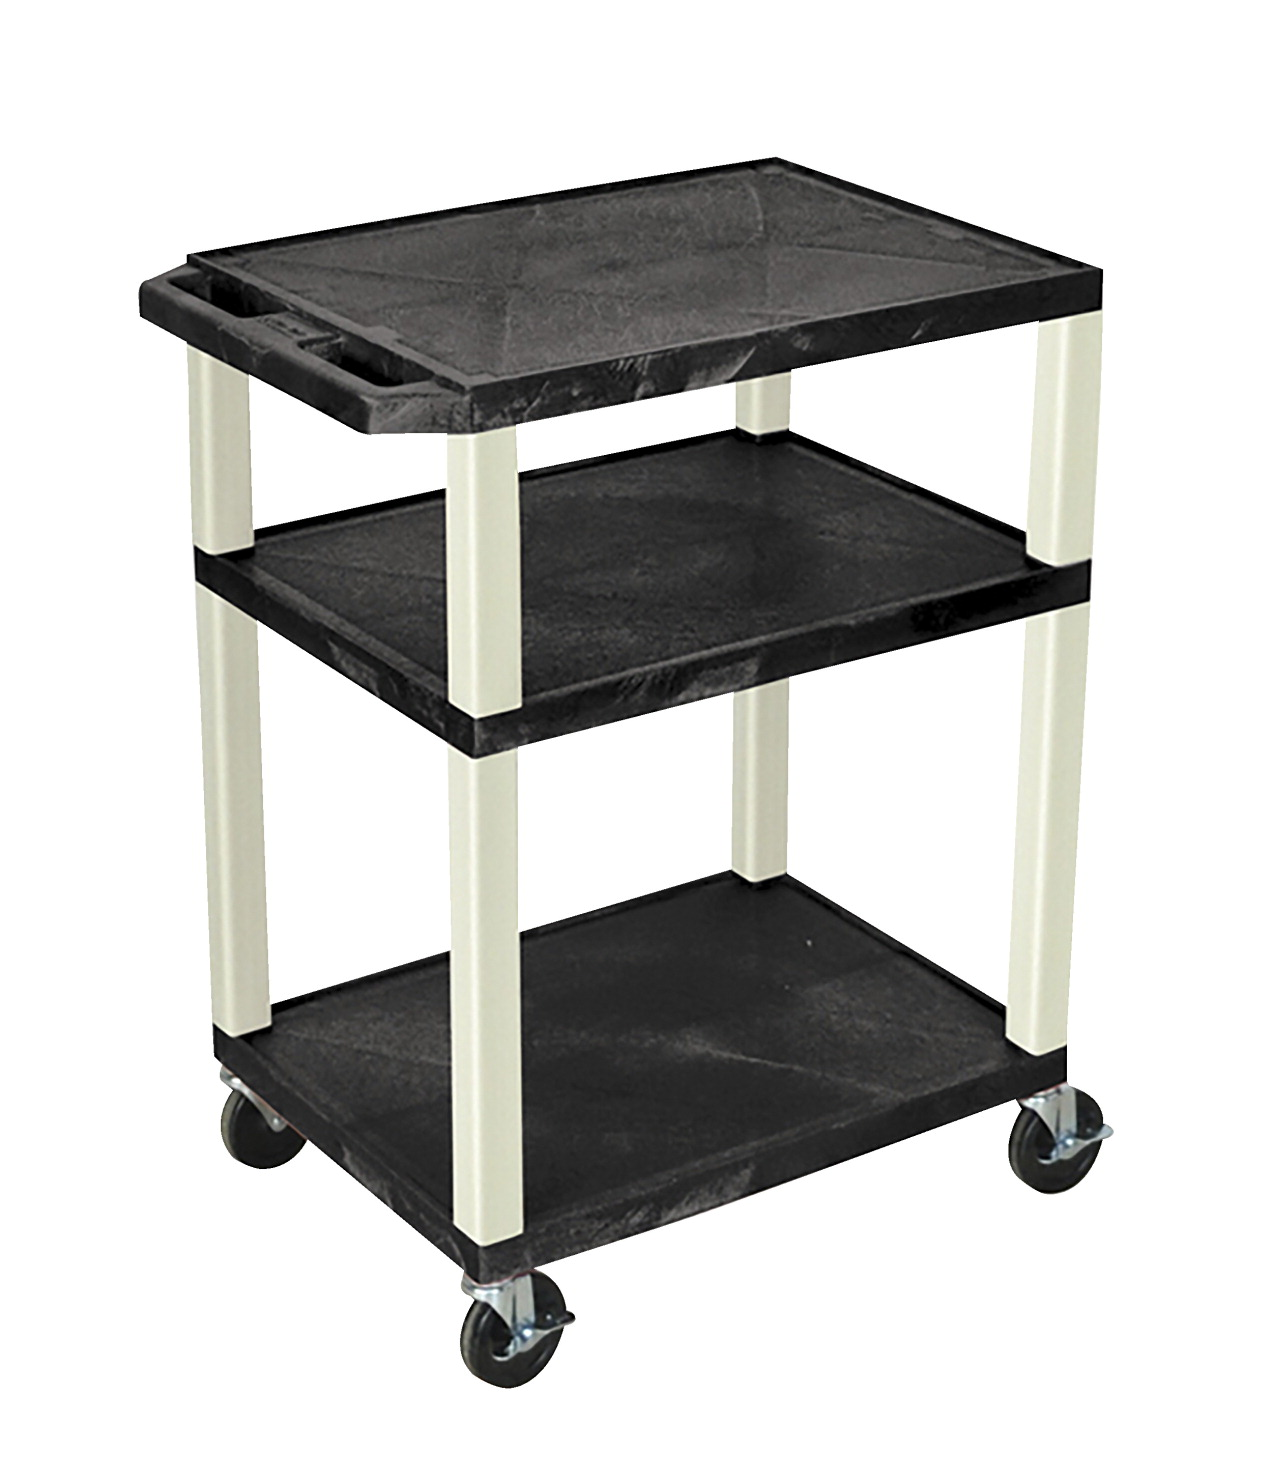 Luxor Tuffy AV Cart with 3 Shelves, 24 x 18 x 34 Inches, Various Options